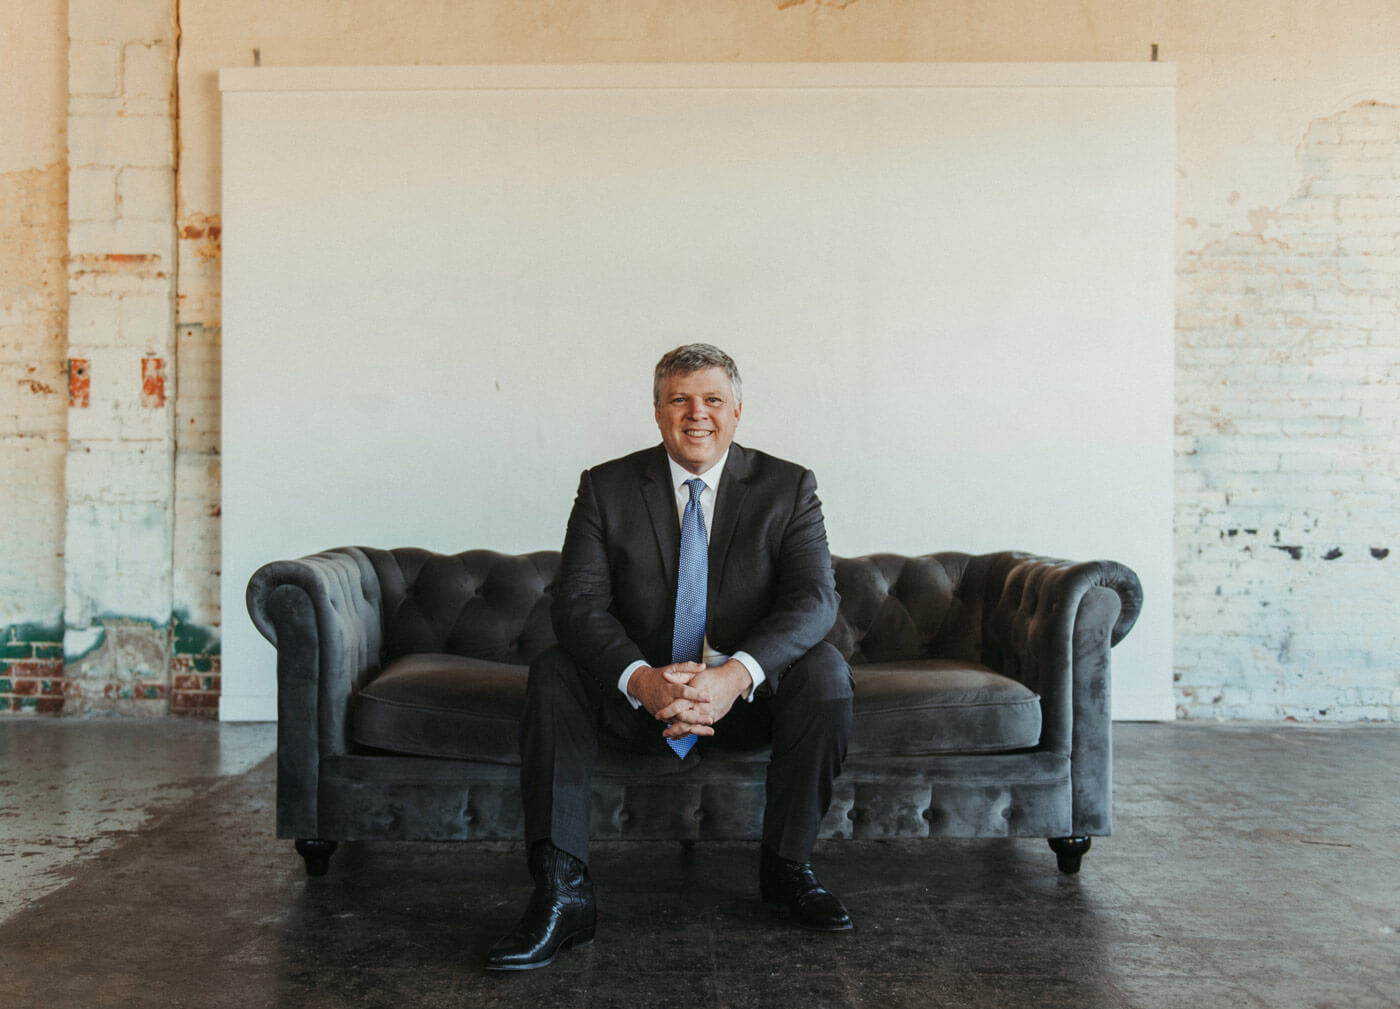 Chris Reser Attorney at Law in Oklahoma